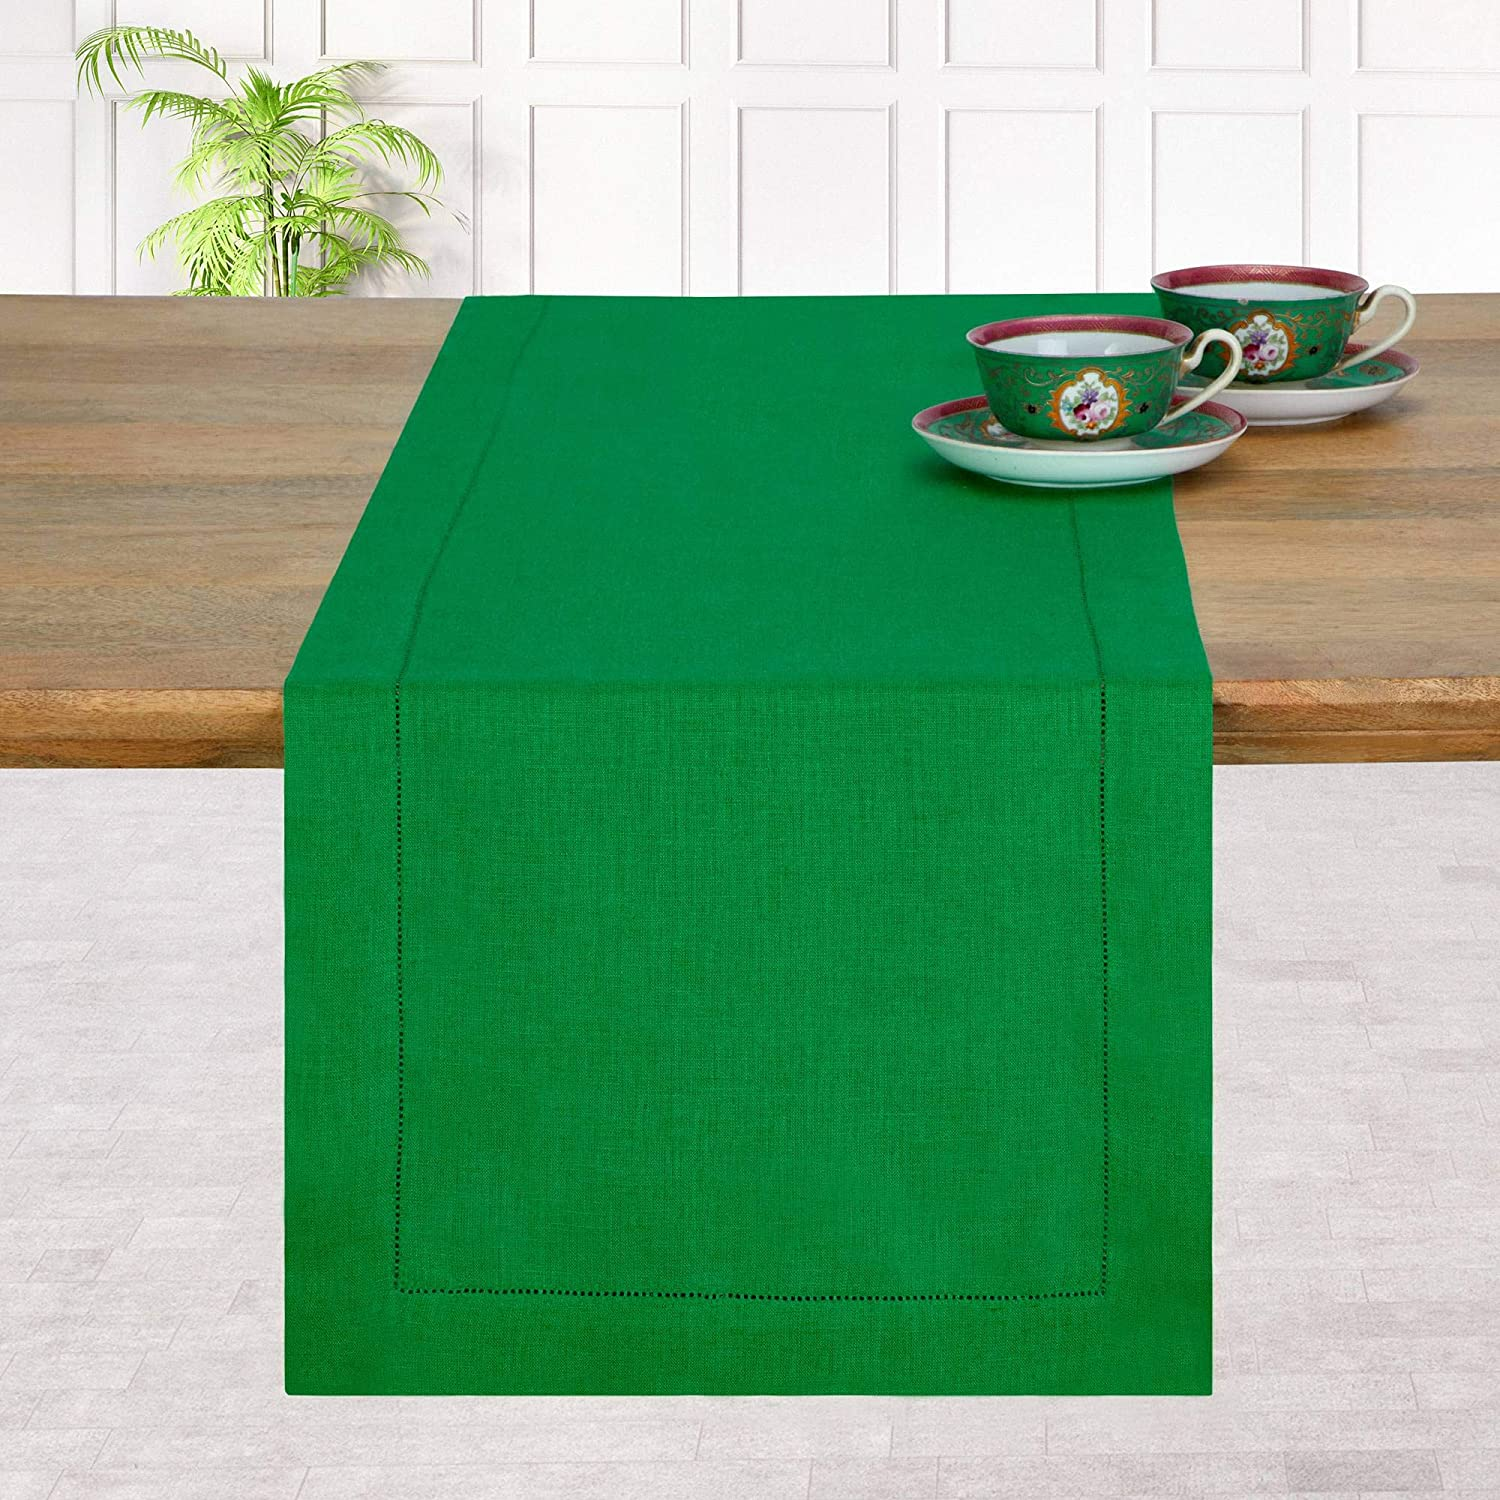 D'Moksha Homes 100% Pure Linen Hemstitch Table Runner - 14 x 36 Inch Glorious Green, Natural Fabric European Flax, Machine Washable, Handcrafted Dresser Scarf with Mitered Corners, Great Gift Choice